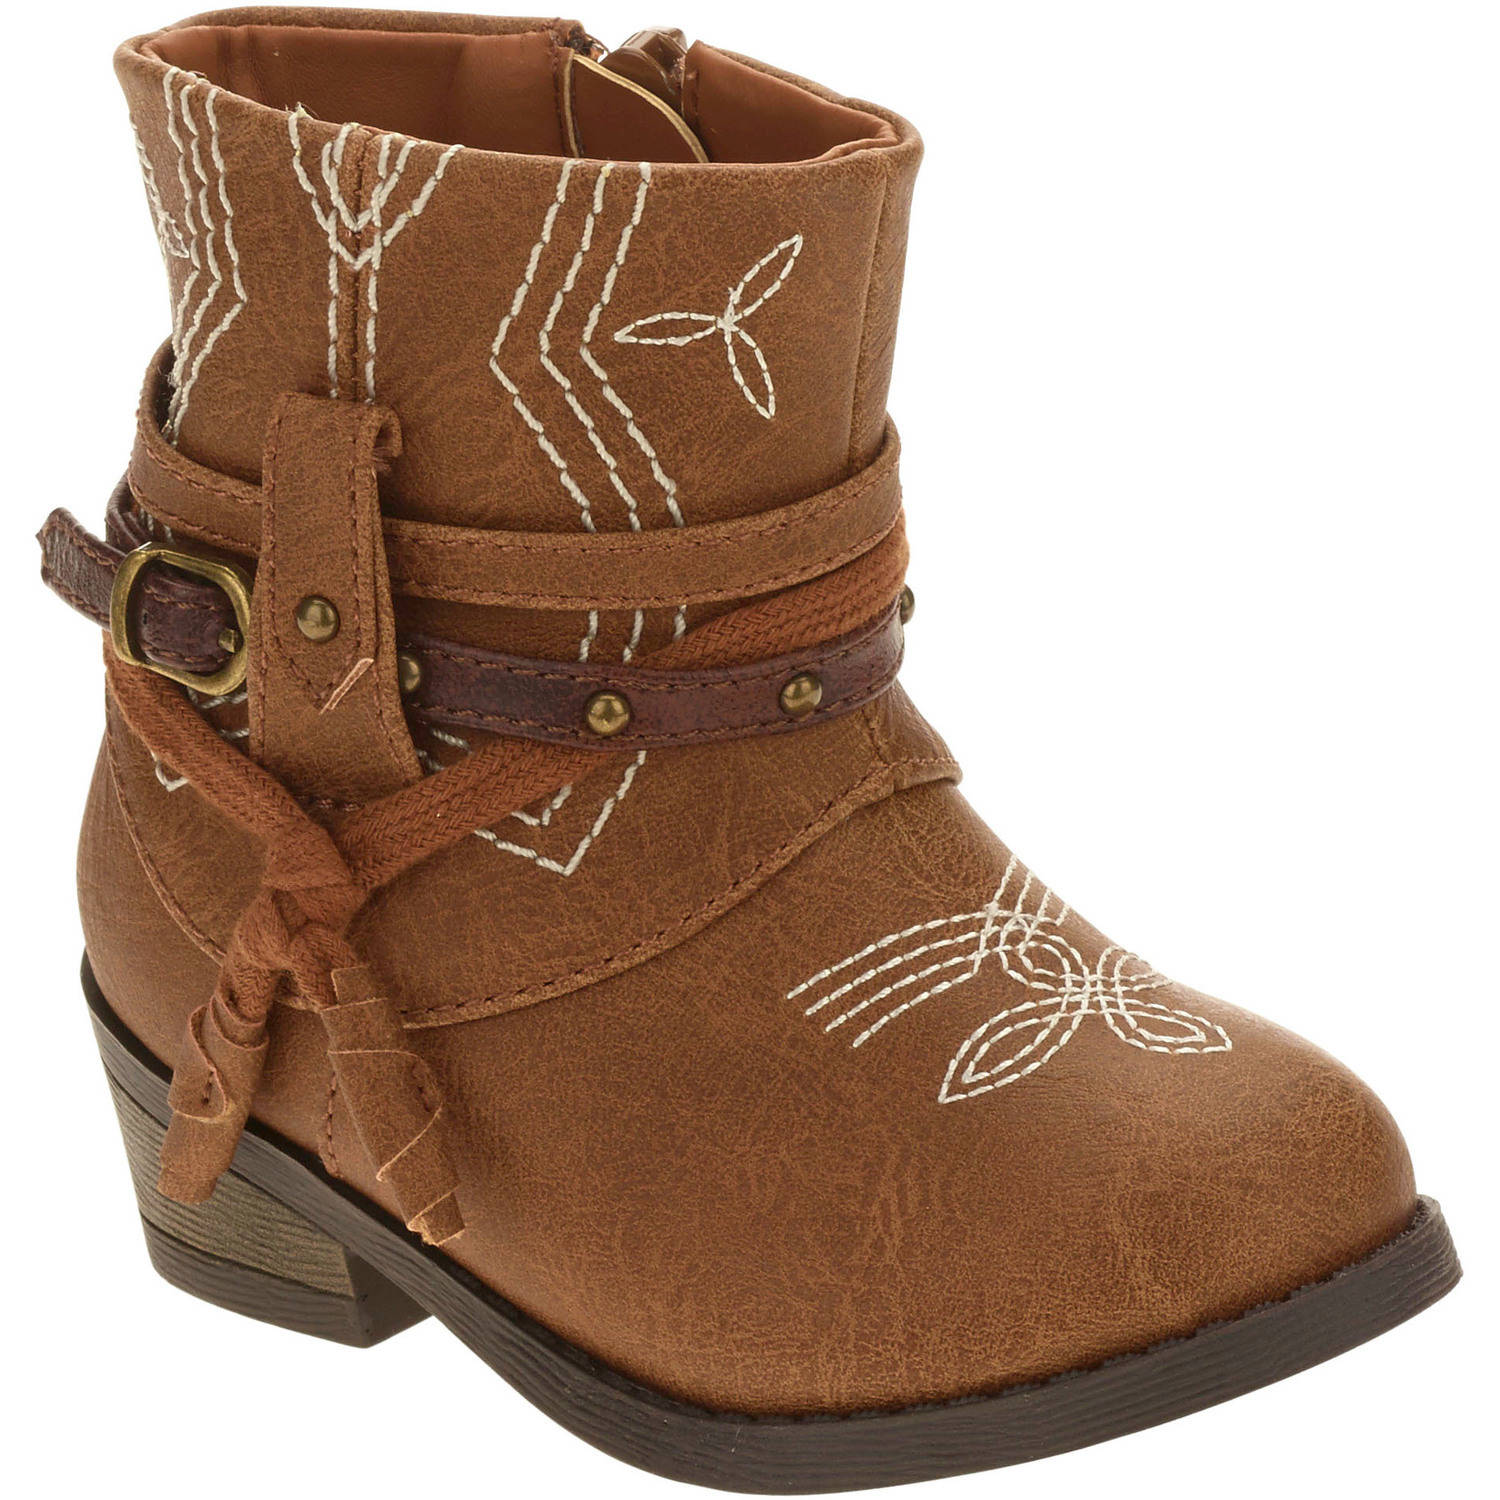 Garanimals Infant Girls Western Cowboy Boot